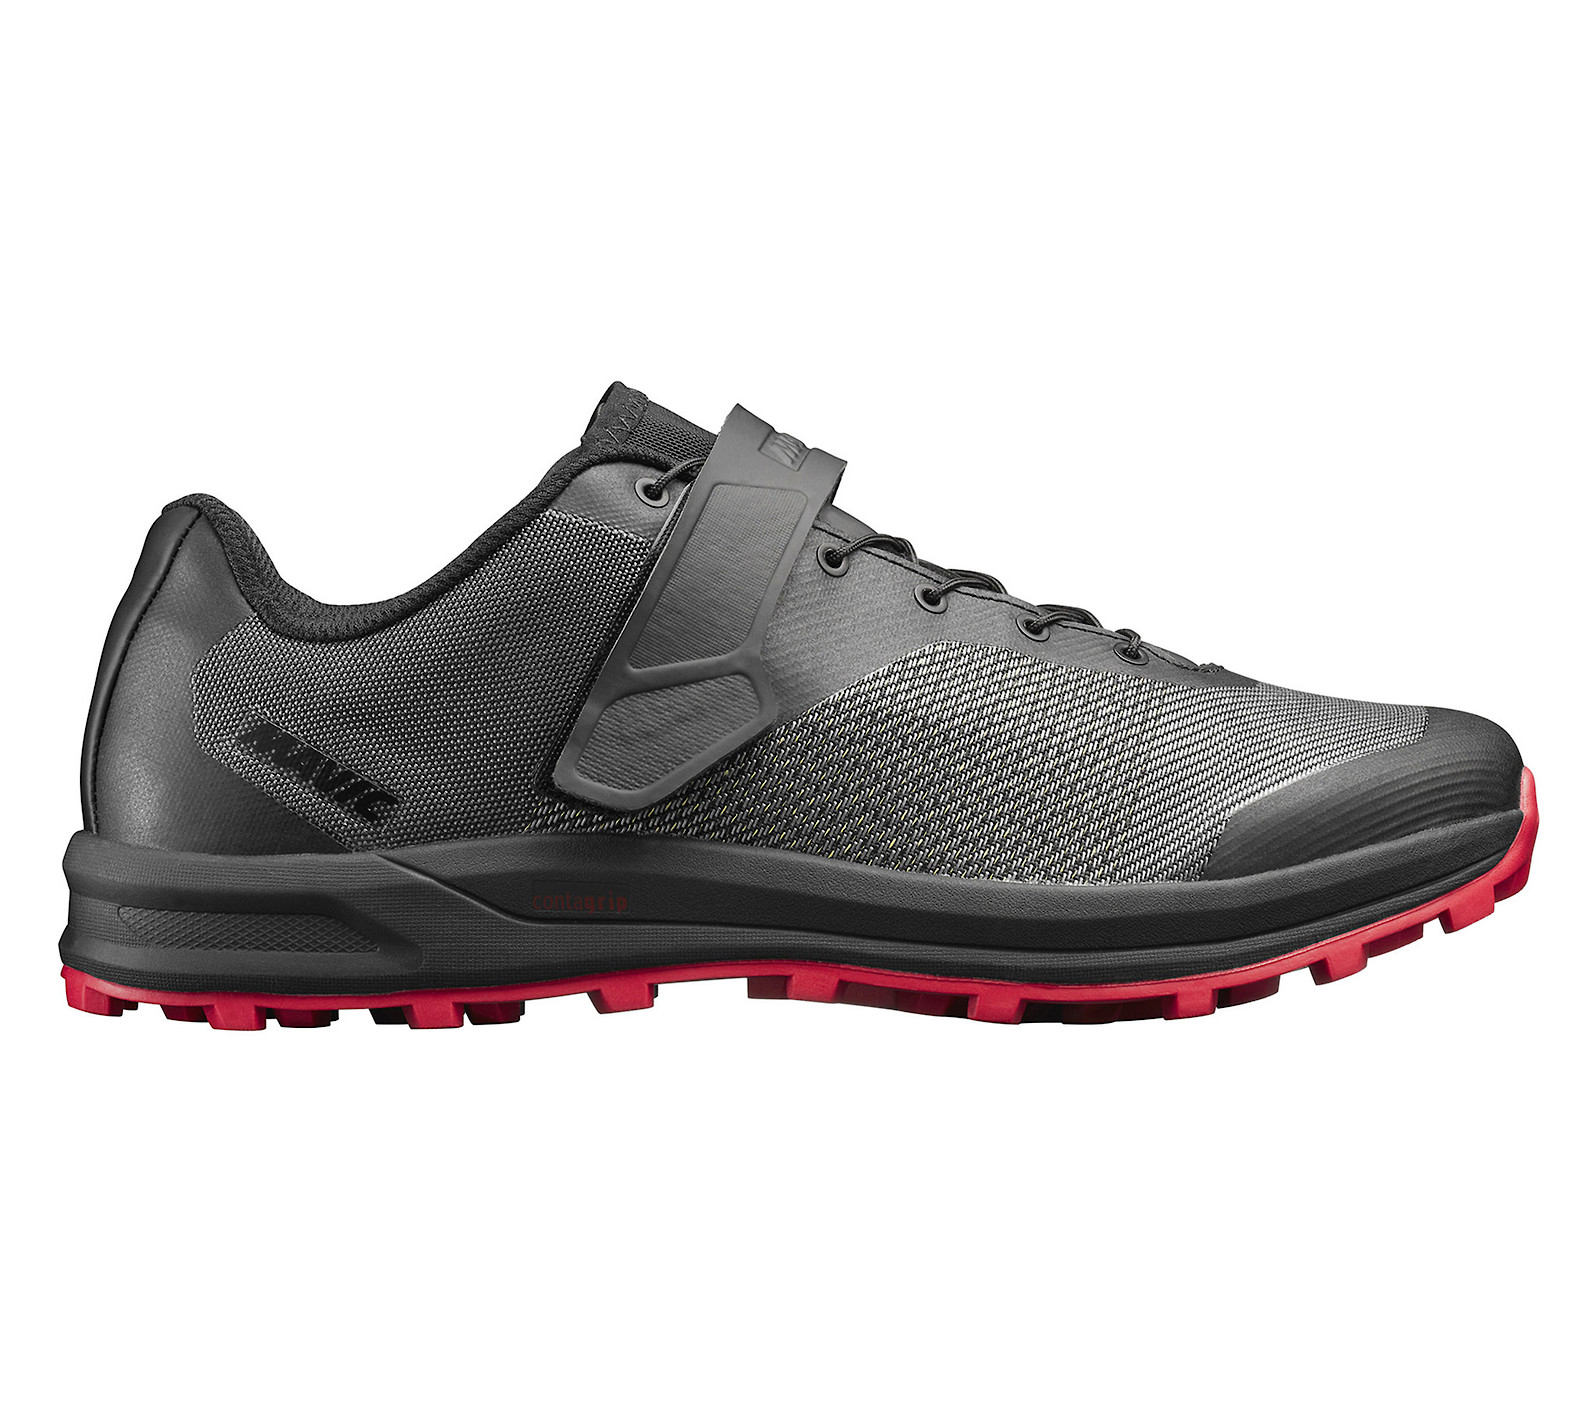 Mavic Echappée Matryx Women's Shoe